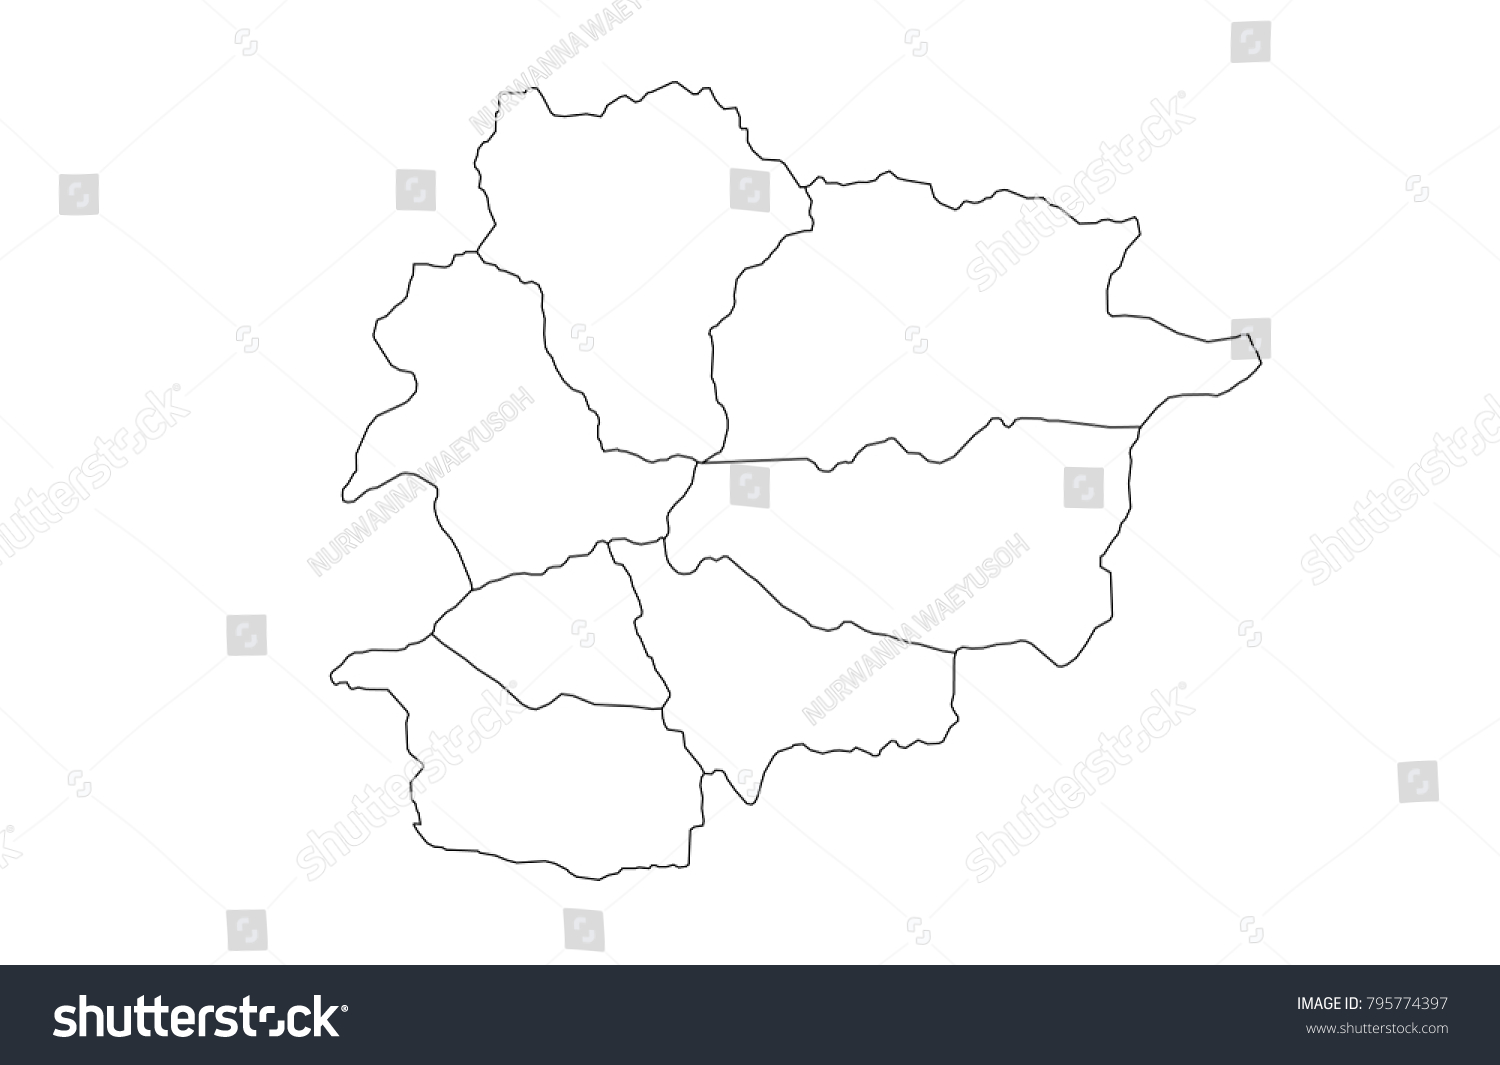 Contour Line Drawing Map : Andorra outline map detailed isolated vector stock